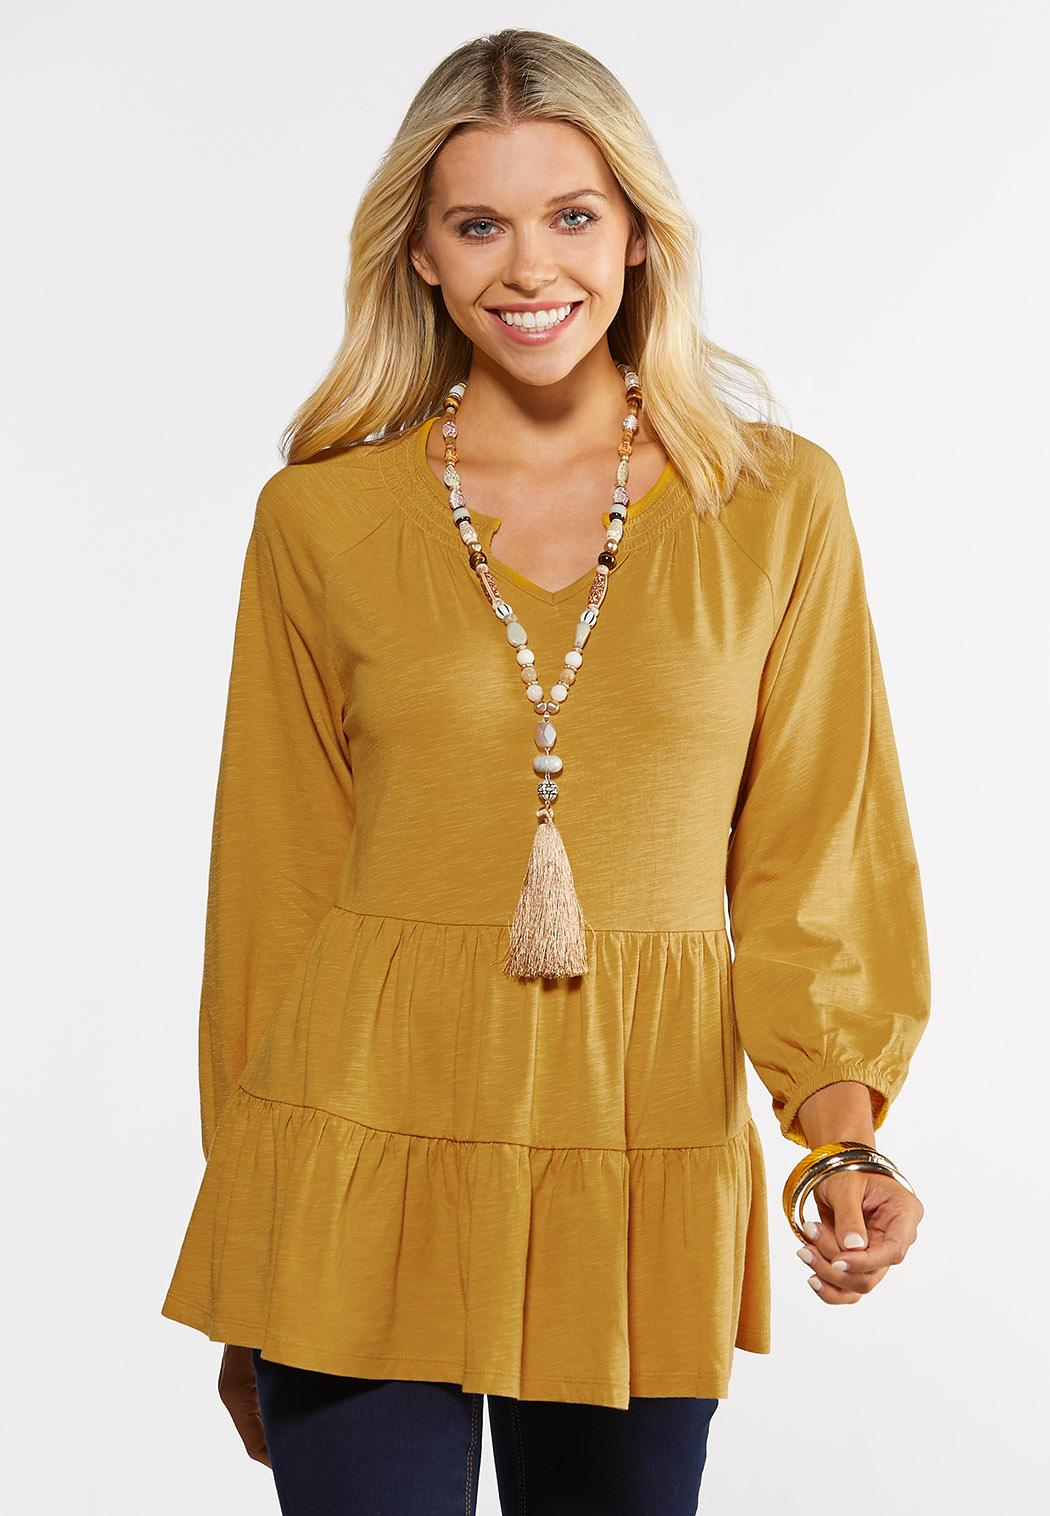 Plus Size Sunny Tiered Top